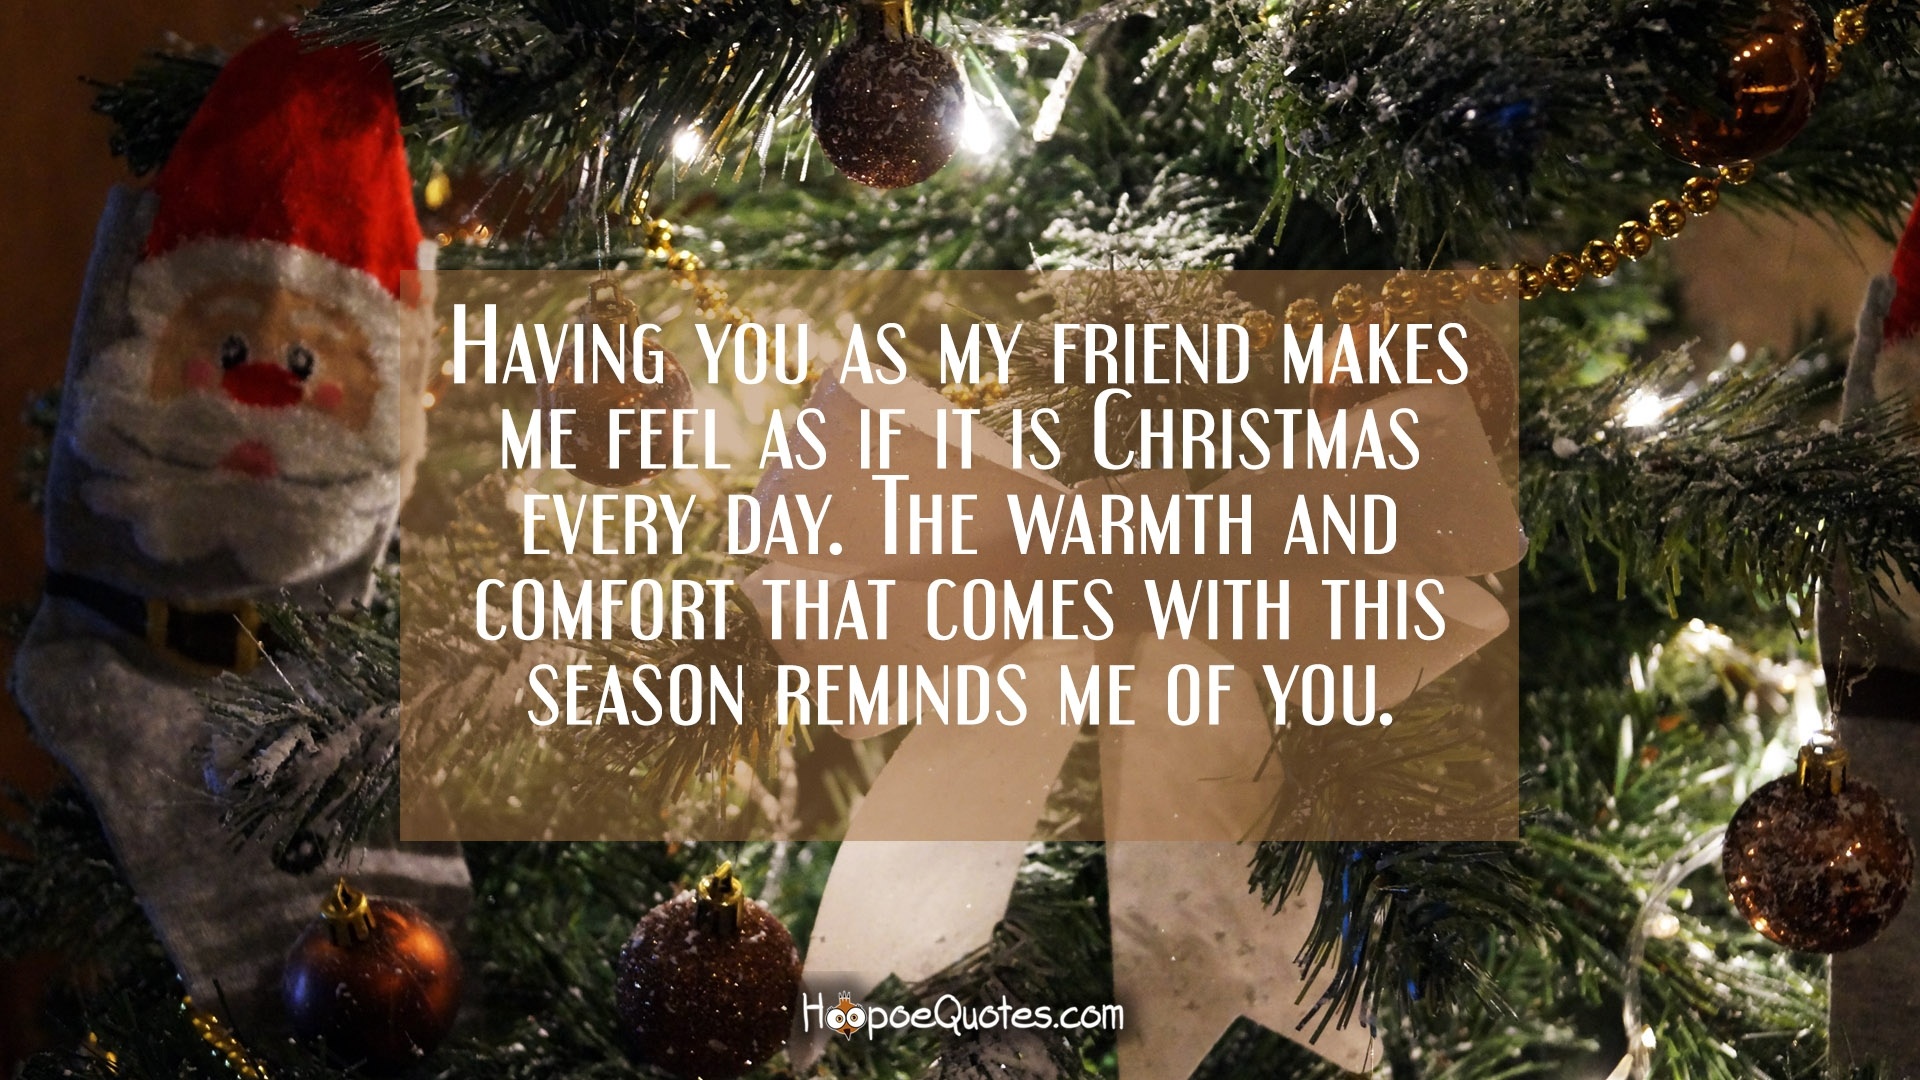 Having You As My Friend Makes Me Feel As If It Is Christmas Every Day. The  Warmth And Comfort That Comes With This Season Reminds Me Of You.